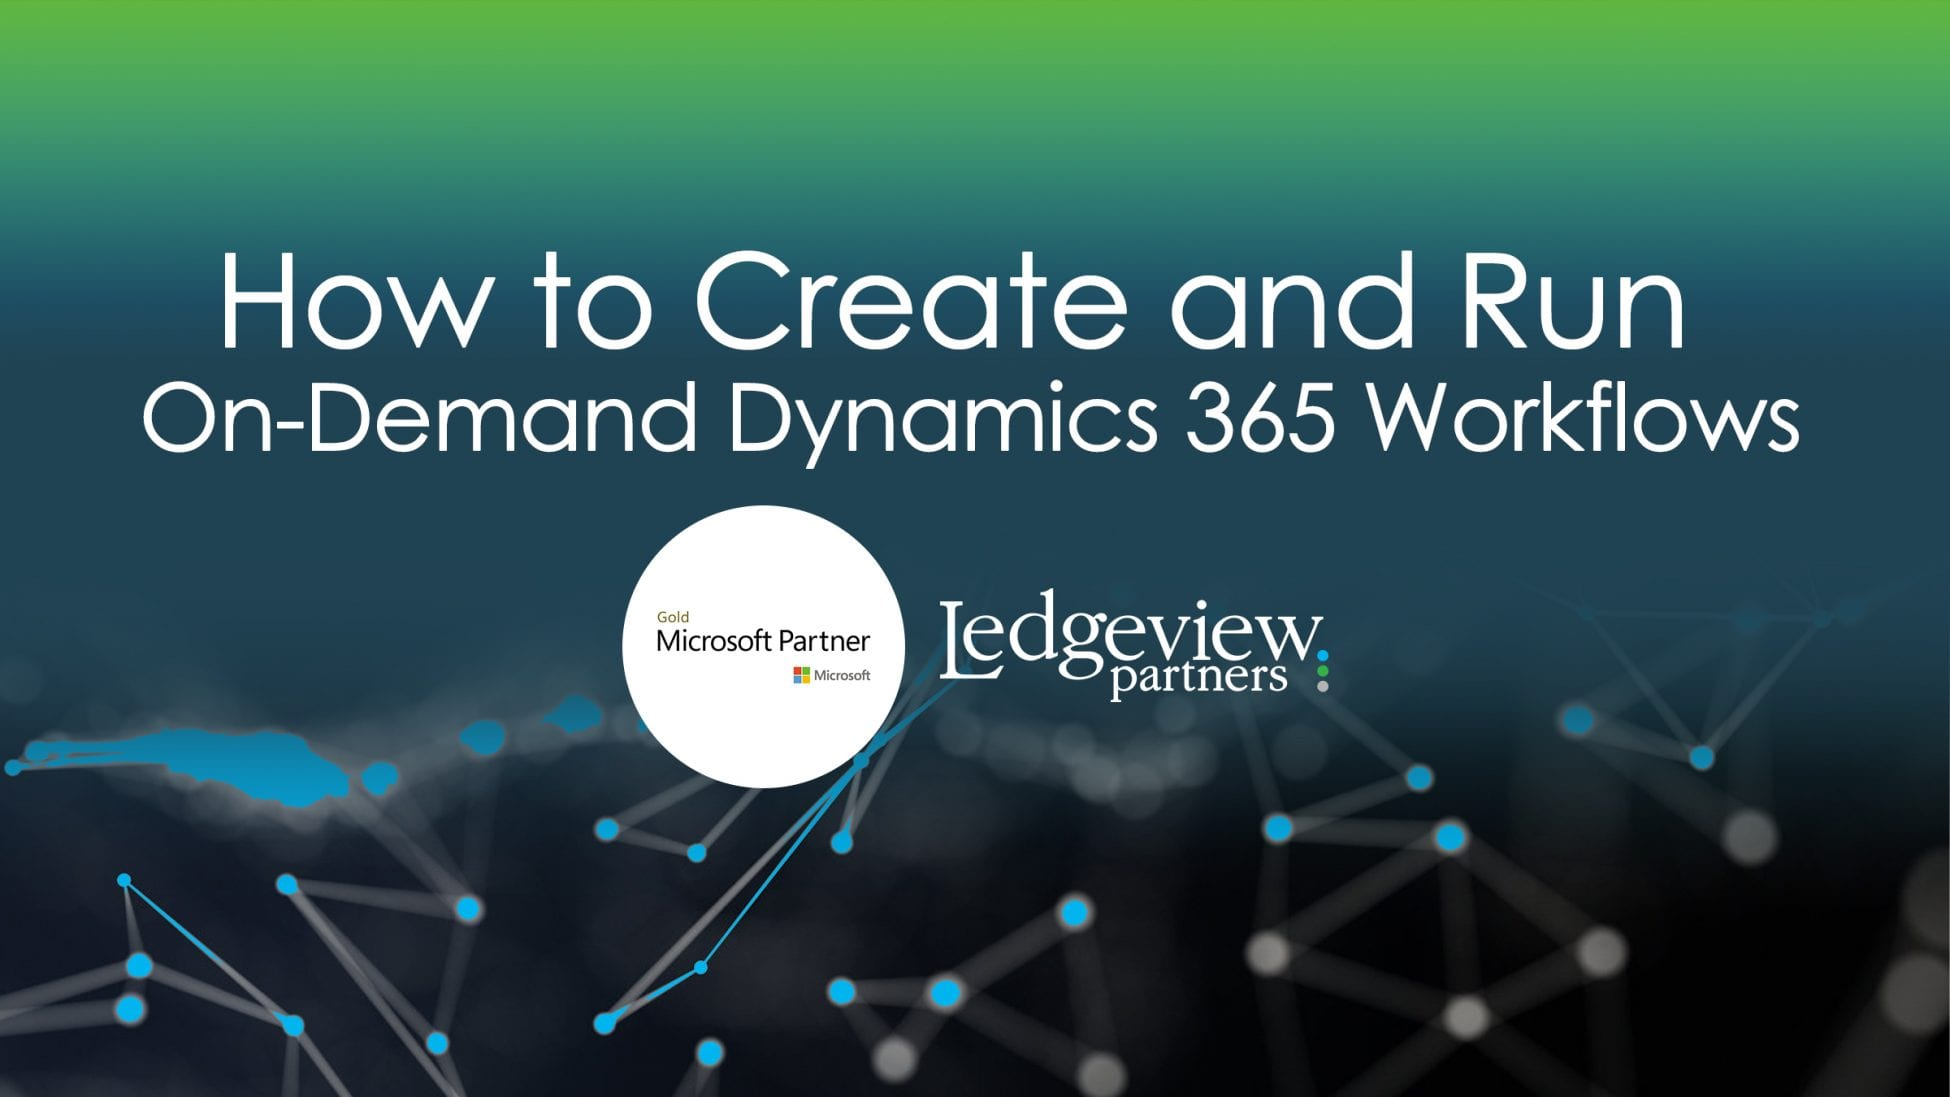 How to Create and Run On-Demand Dynamics 365 Workflows